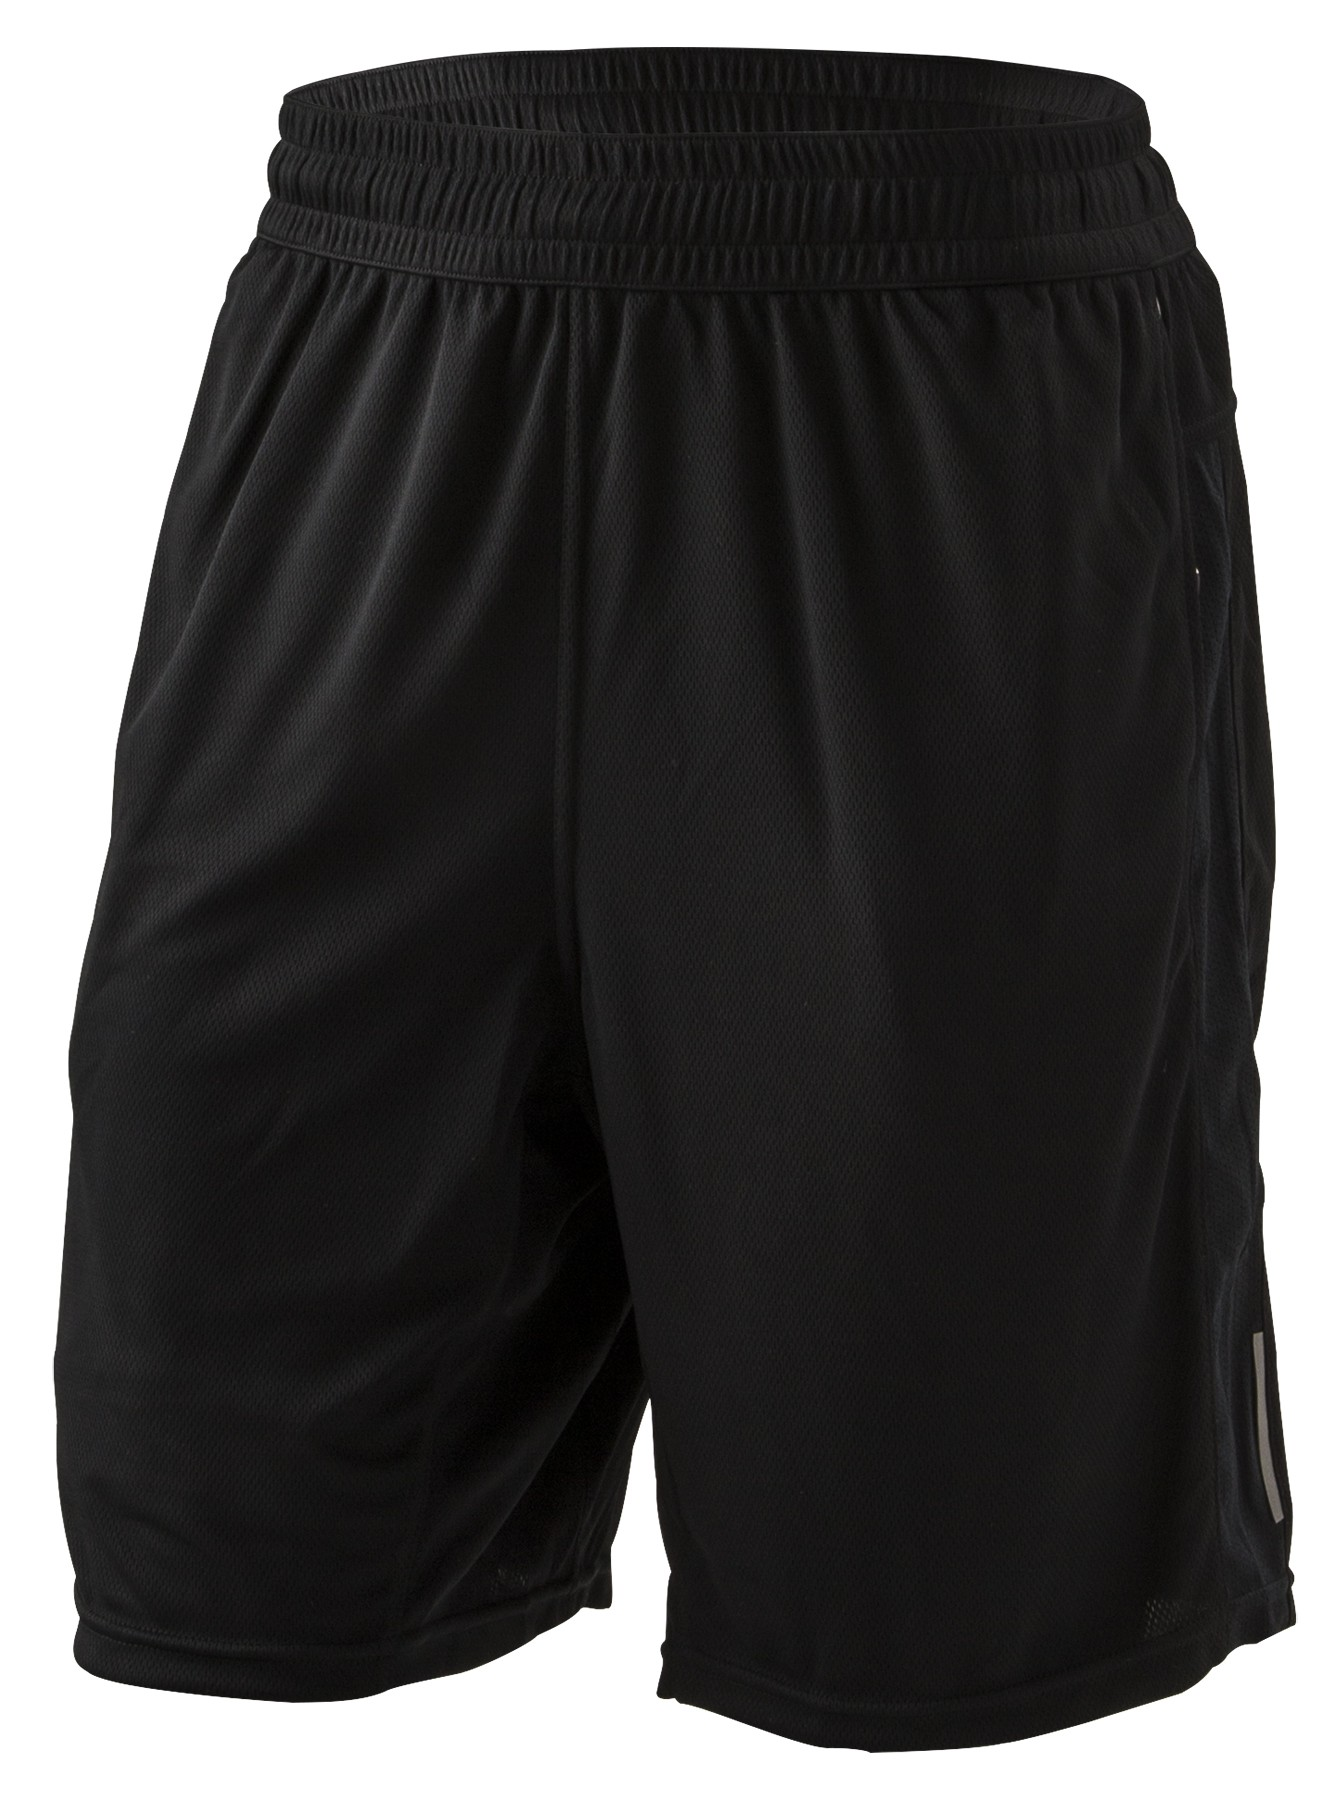 Cannondale Fitness Baggy Shorts Mens Black Cycling Shorts